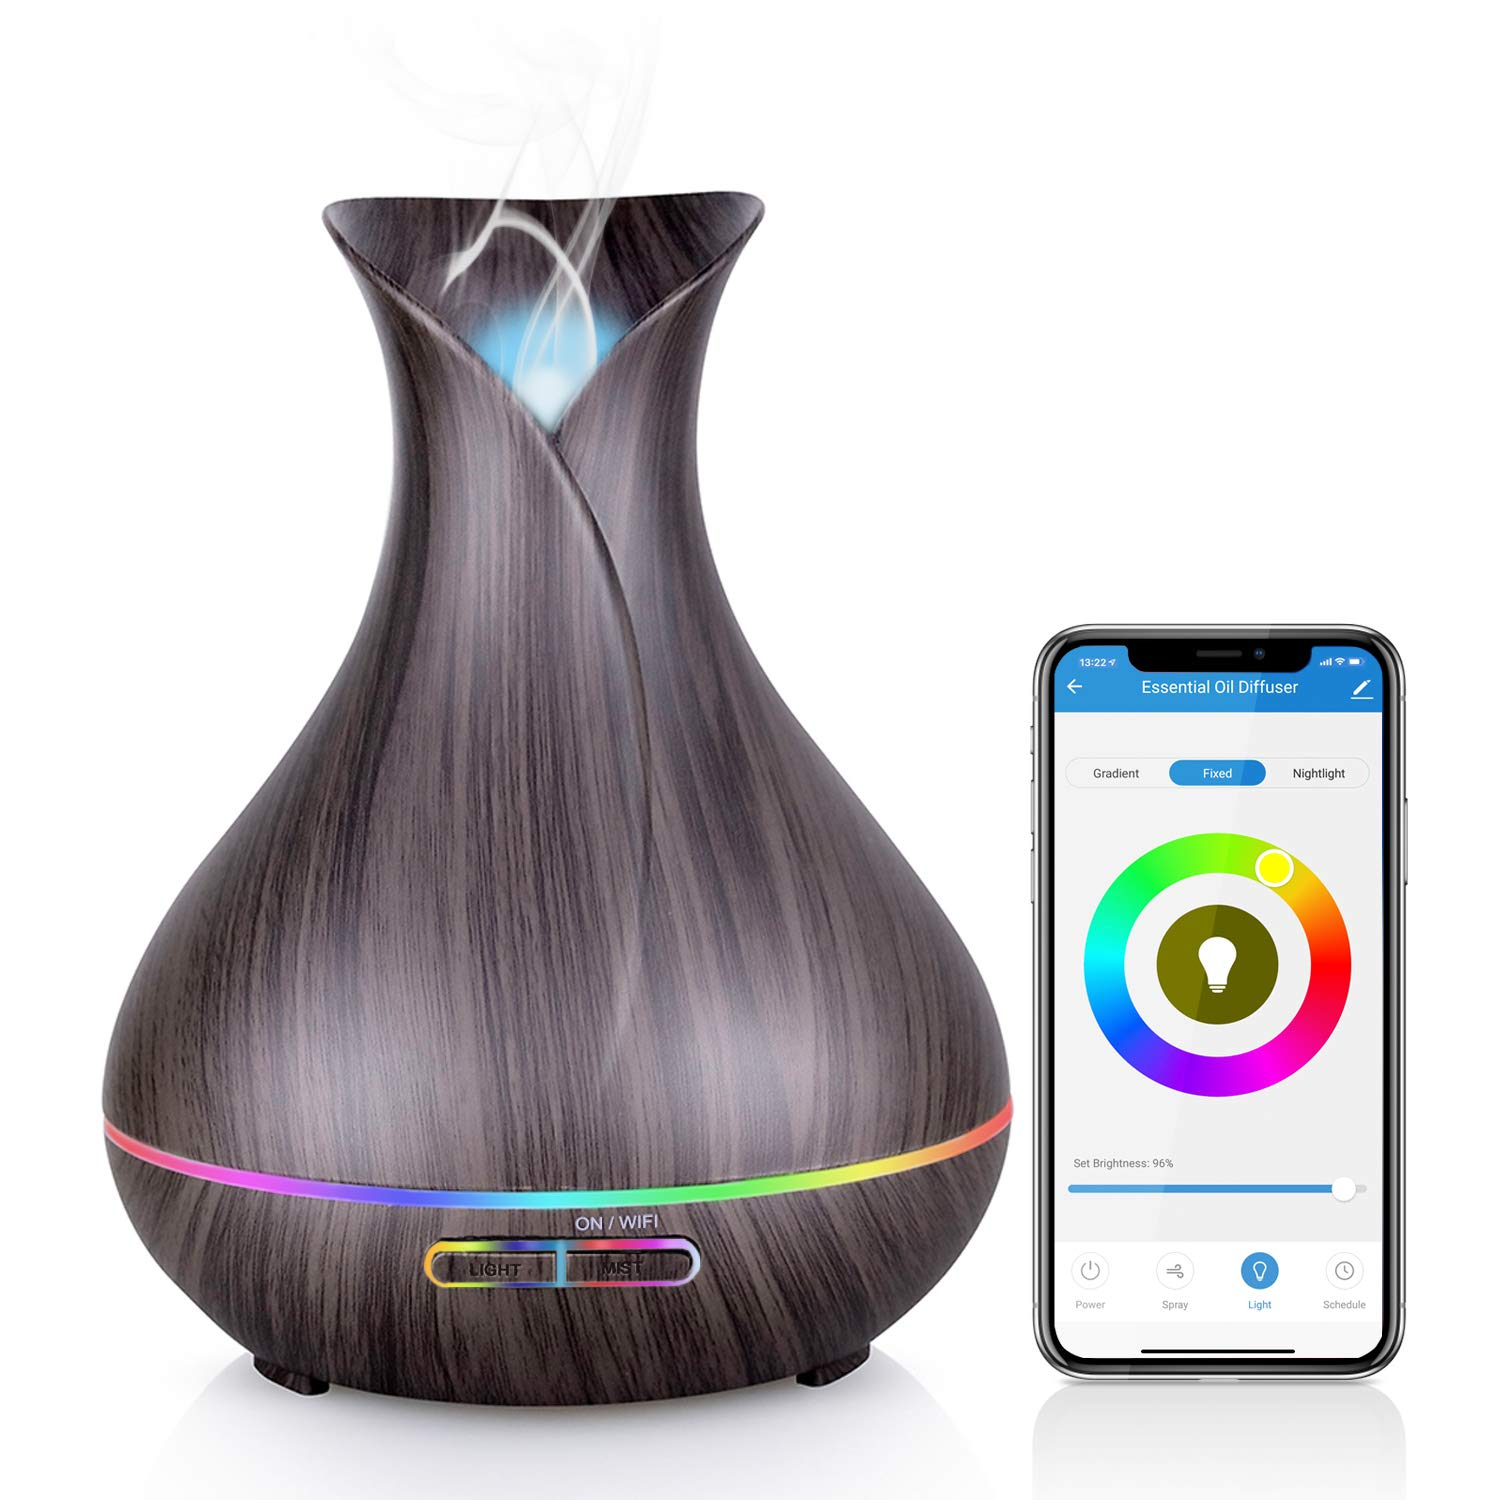 WiFi Essential Oil Diffuser, Maxcio 400ml Smart Aromatherapy Diffuser, Ultrasonic Humidifier with Colorful LED Lights, Smart Phone Remote Control, Alexa&Google Home Compatible, Timer/Schedule Setting by Maxcio